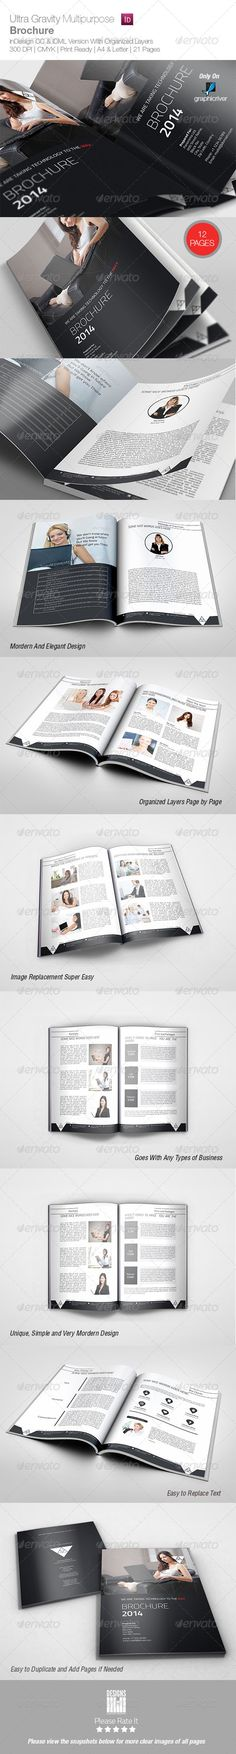 DetailsInDesign File with Properly organized layers 12 Pages Professional fully Editable InDesign File (.indd   .IDML ) 1 Front Co